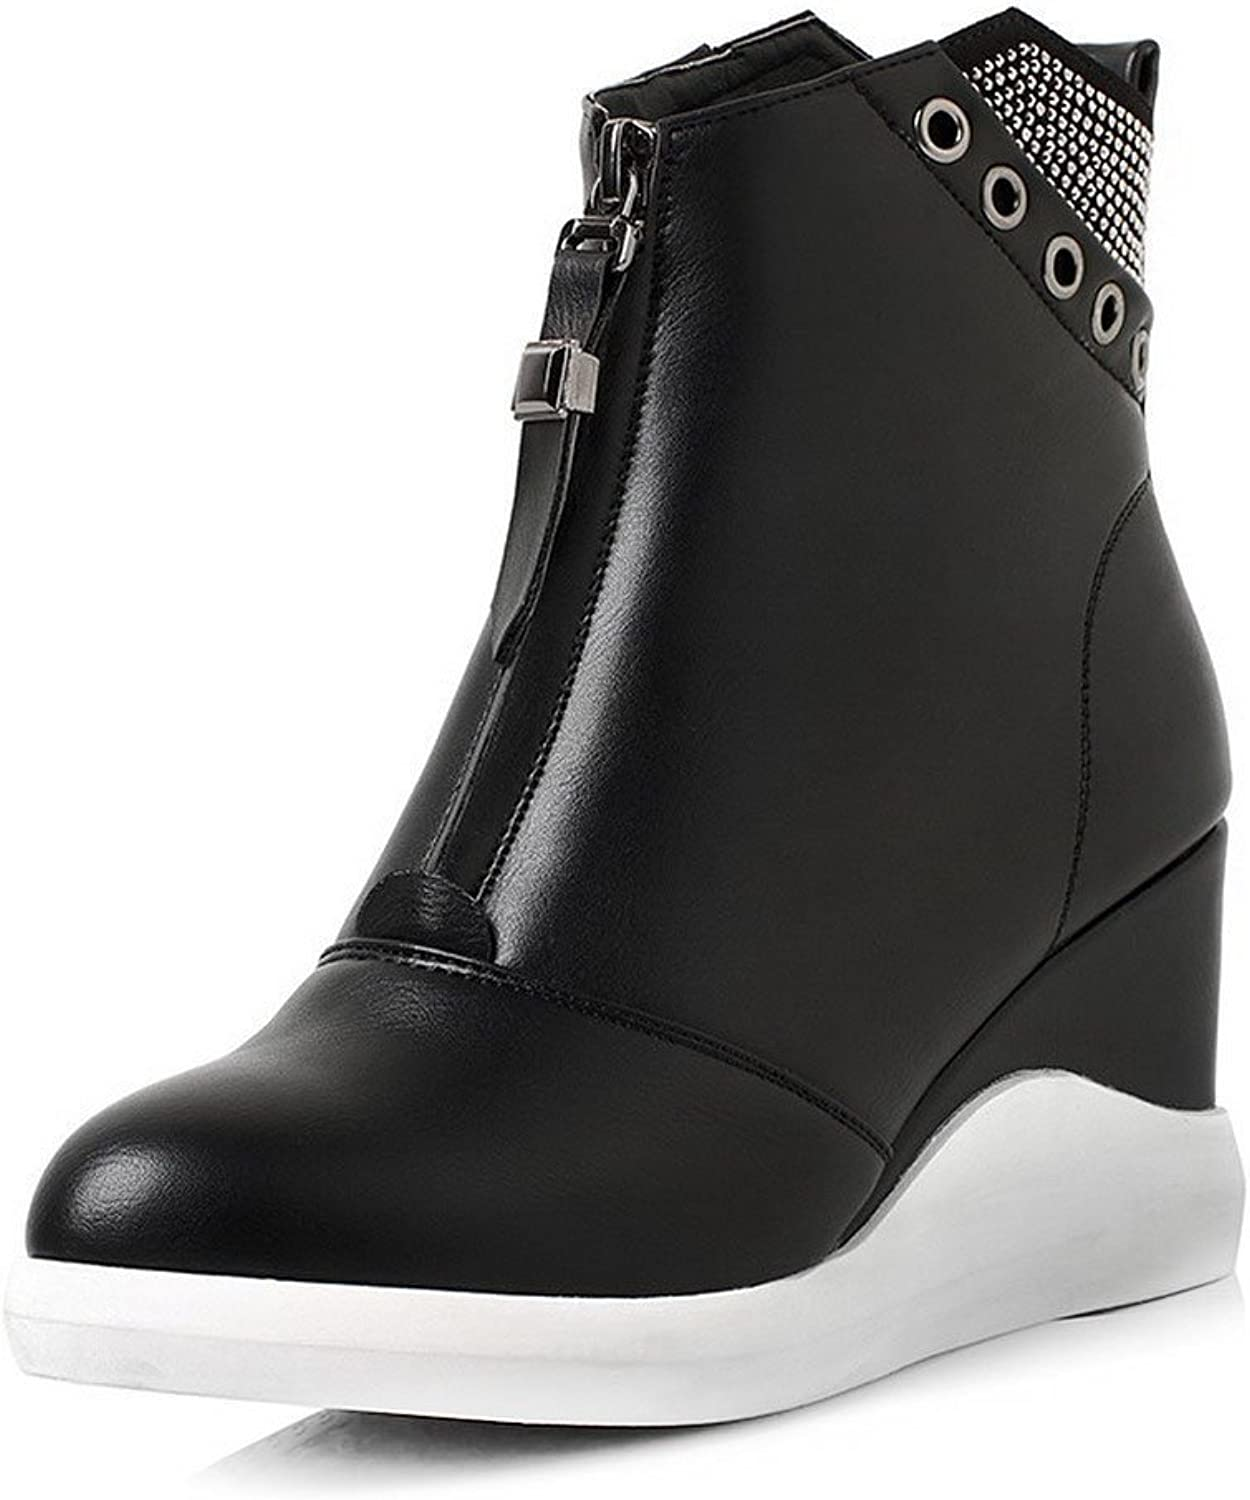 Laolaooo shoes Women's Round Closed Toe Low-top High Heels Solid PU Boots